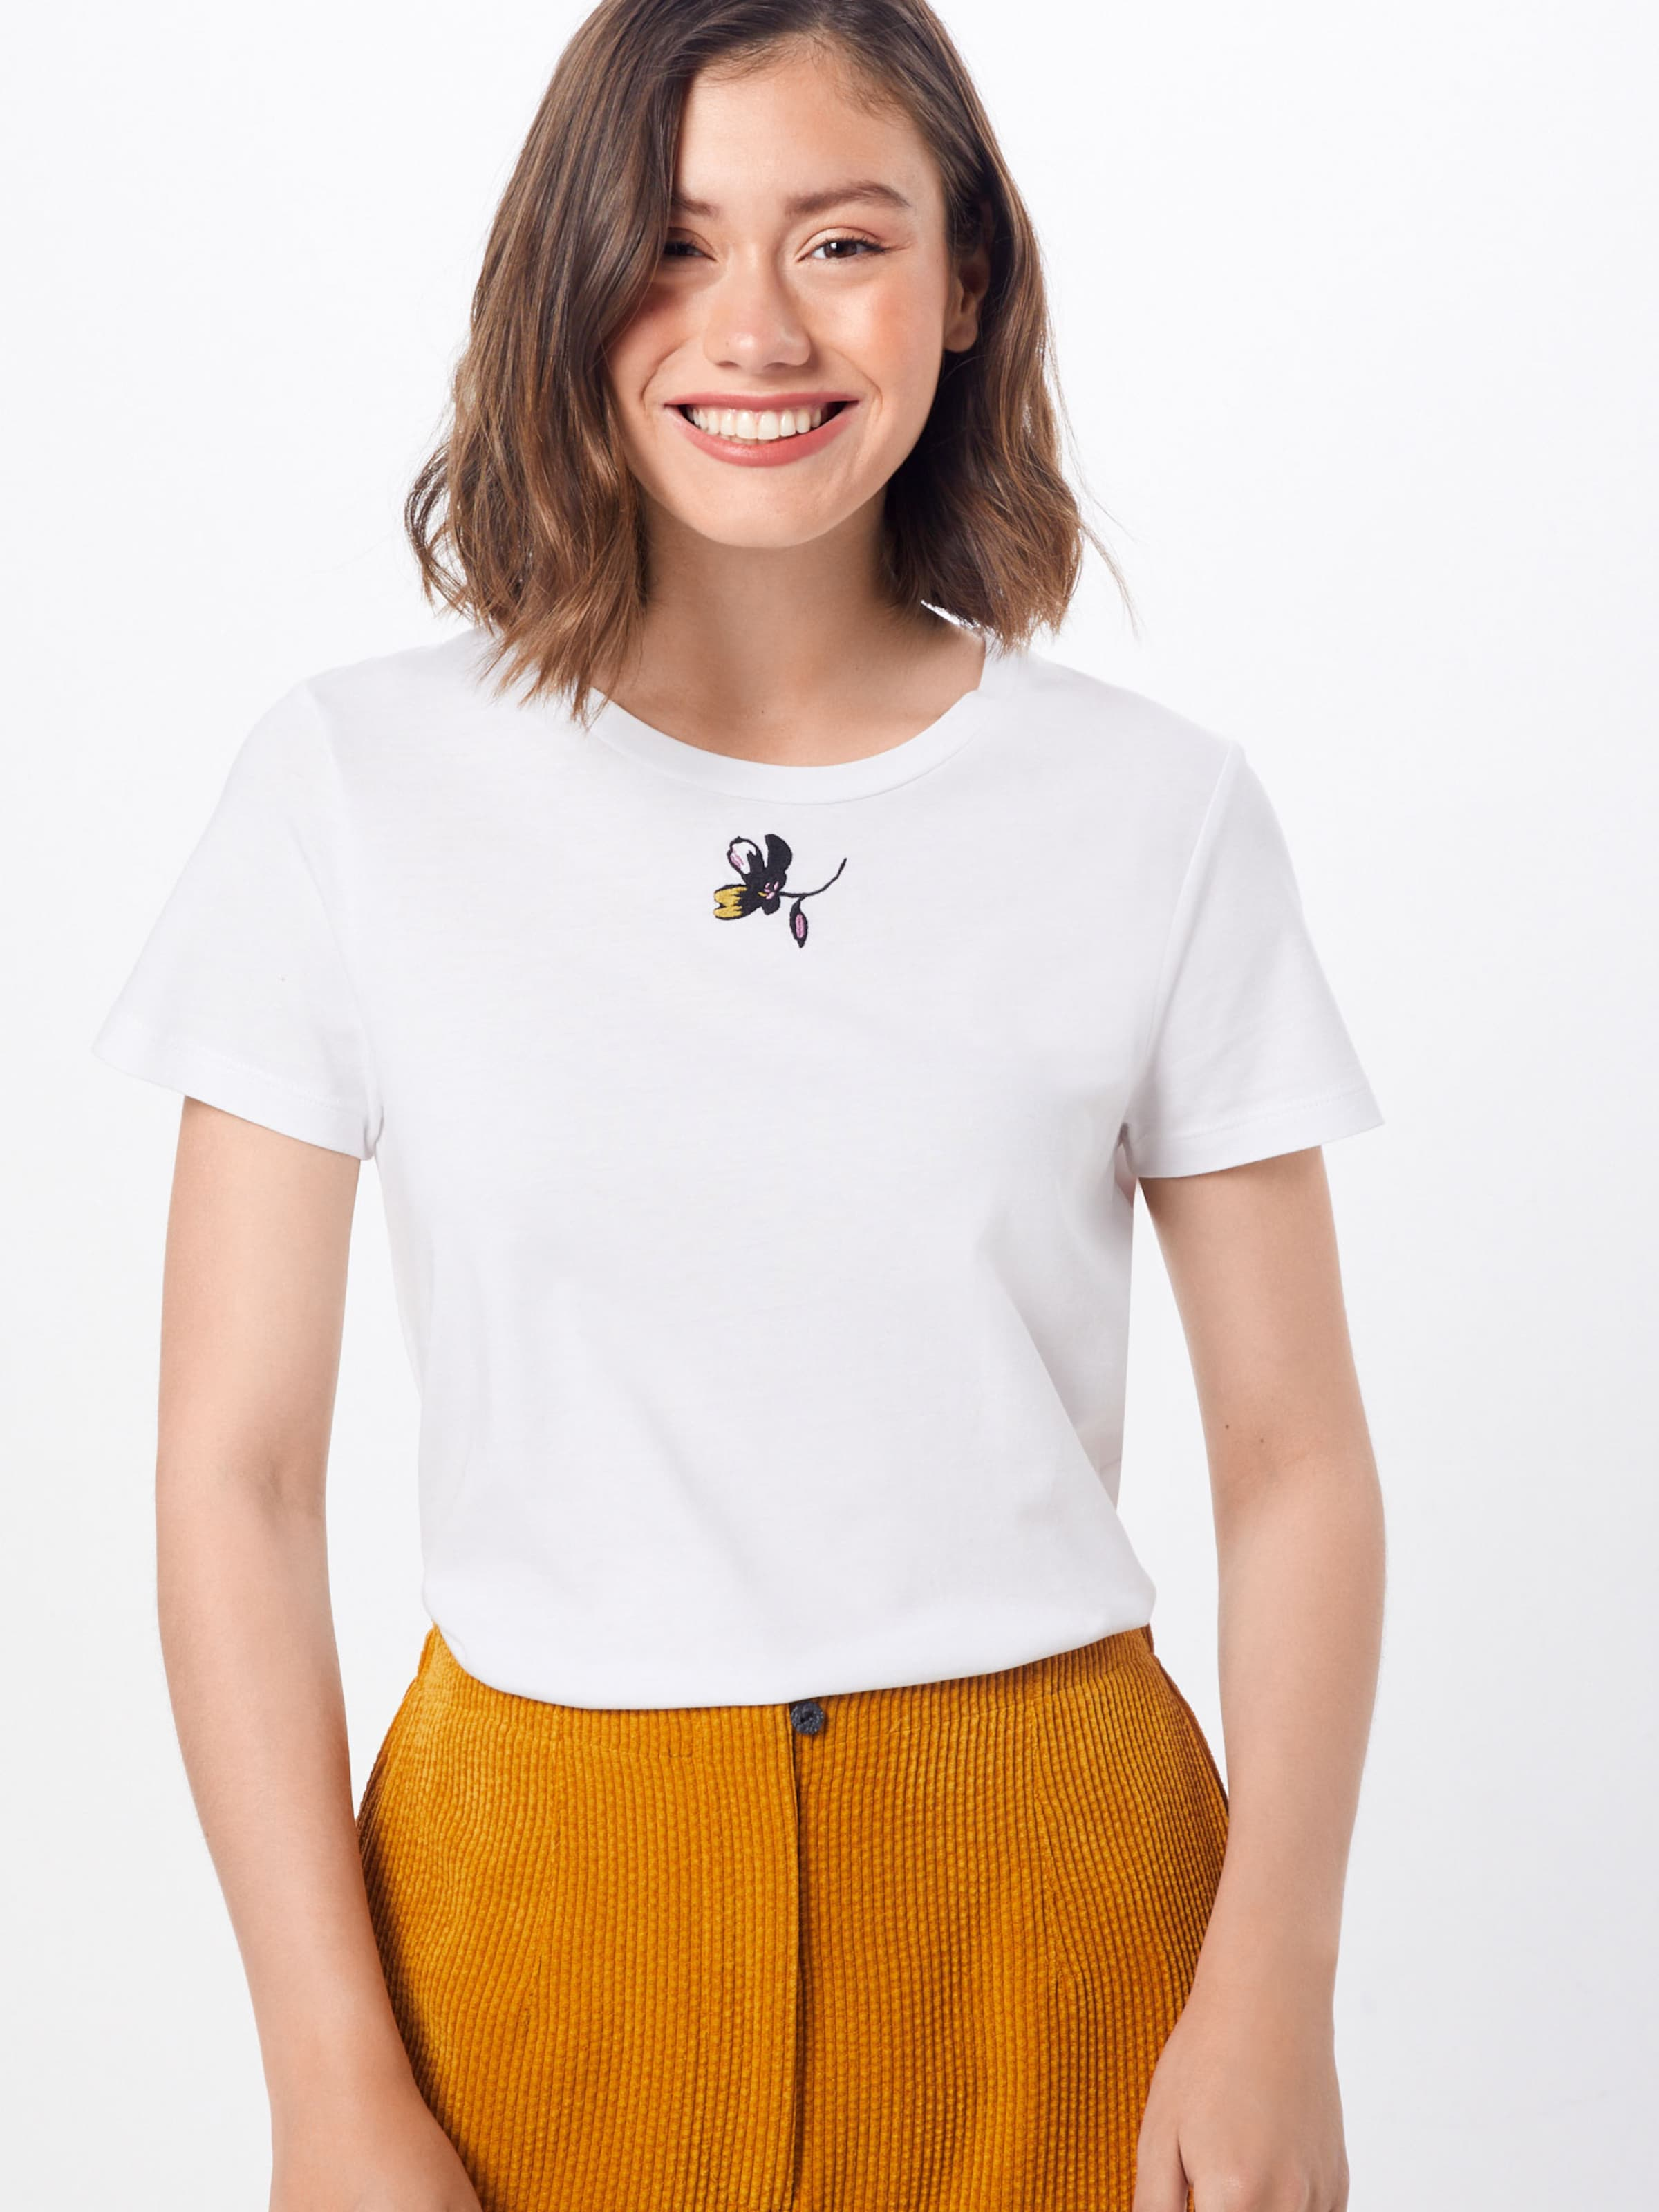 Moves T 'lulu Blanc shirt En 1371' 4L5AjR